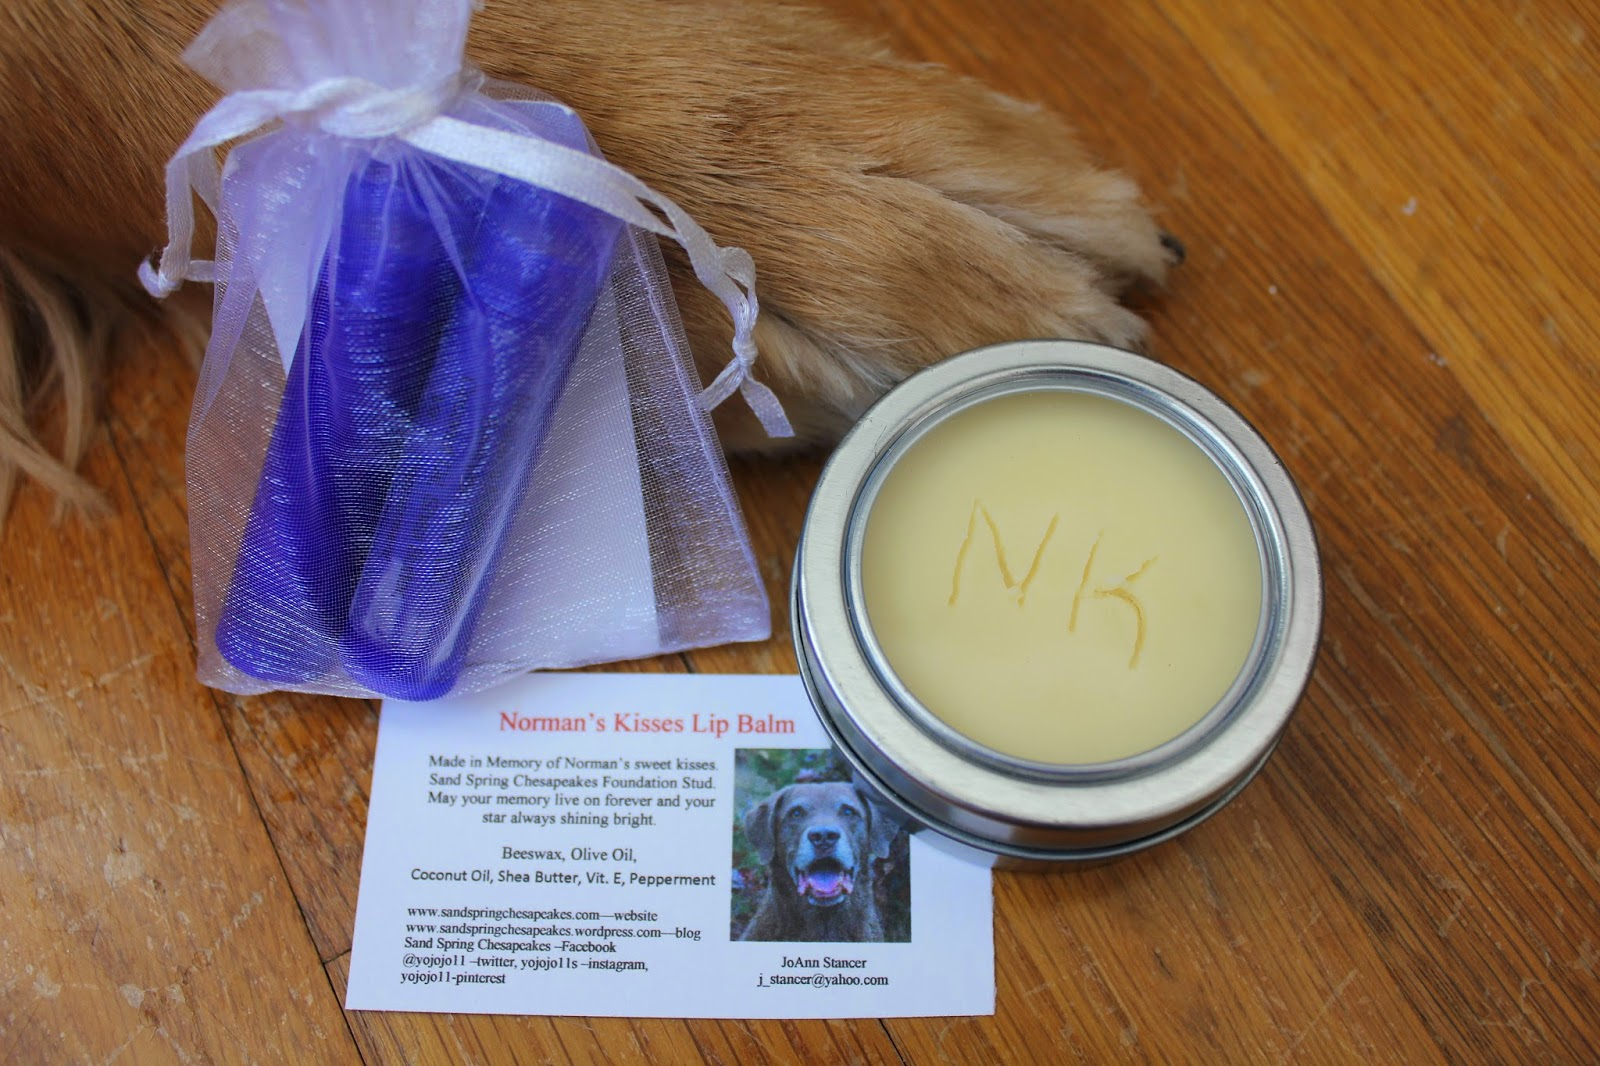 Norman's Kisses hand to paw cream and lip balm